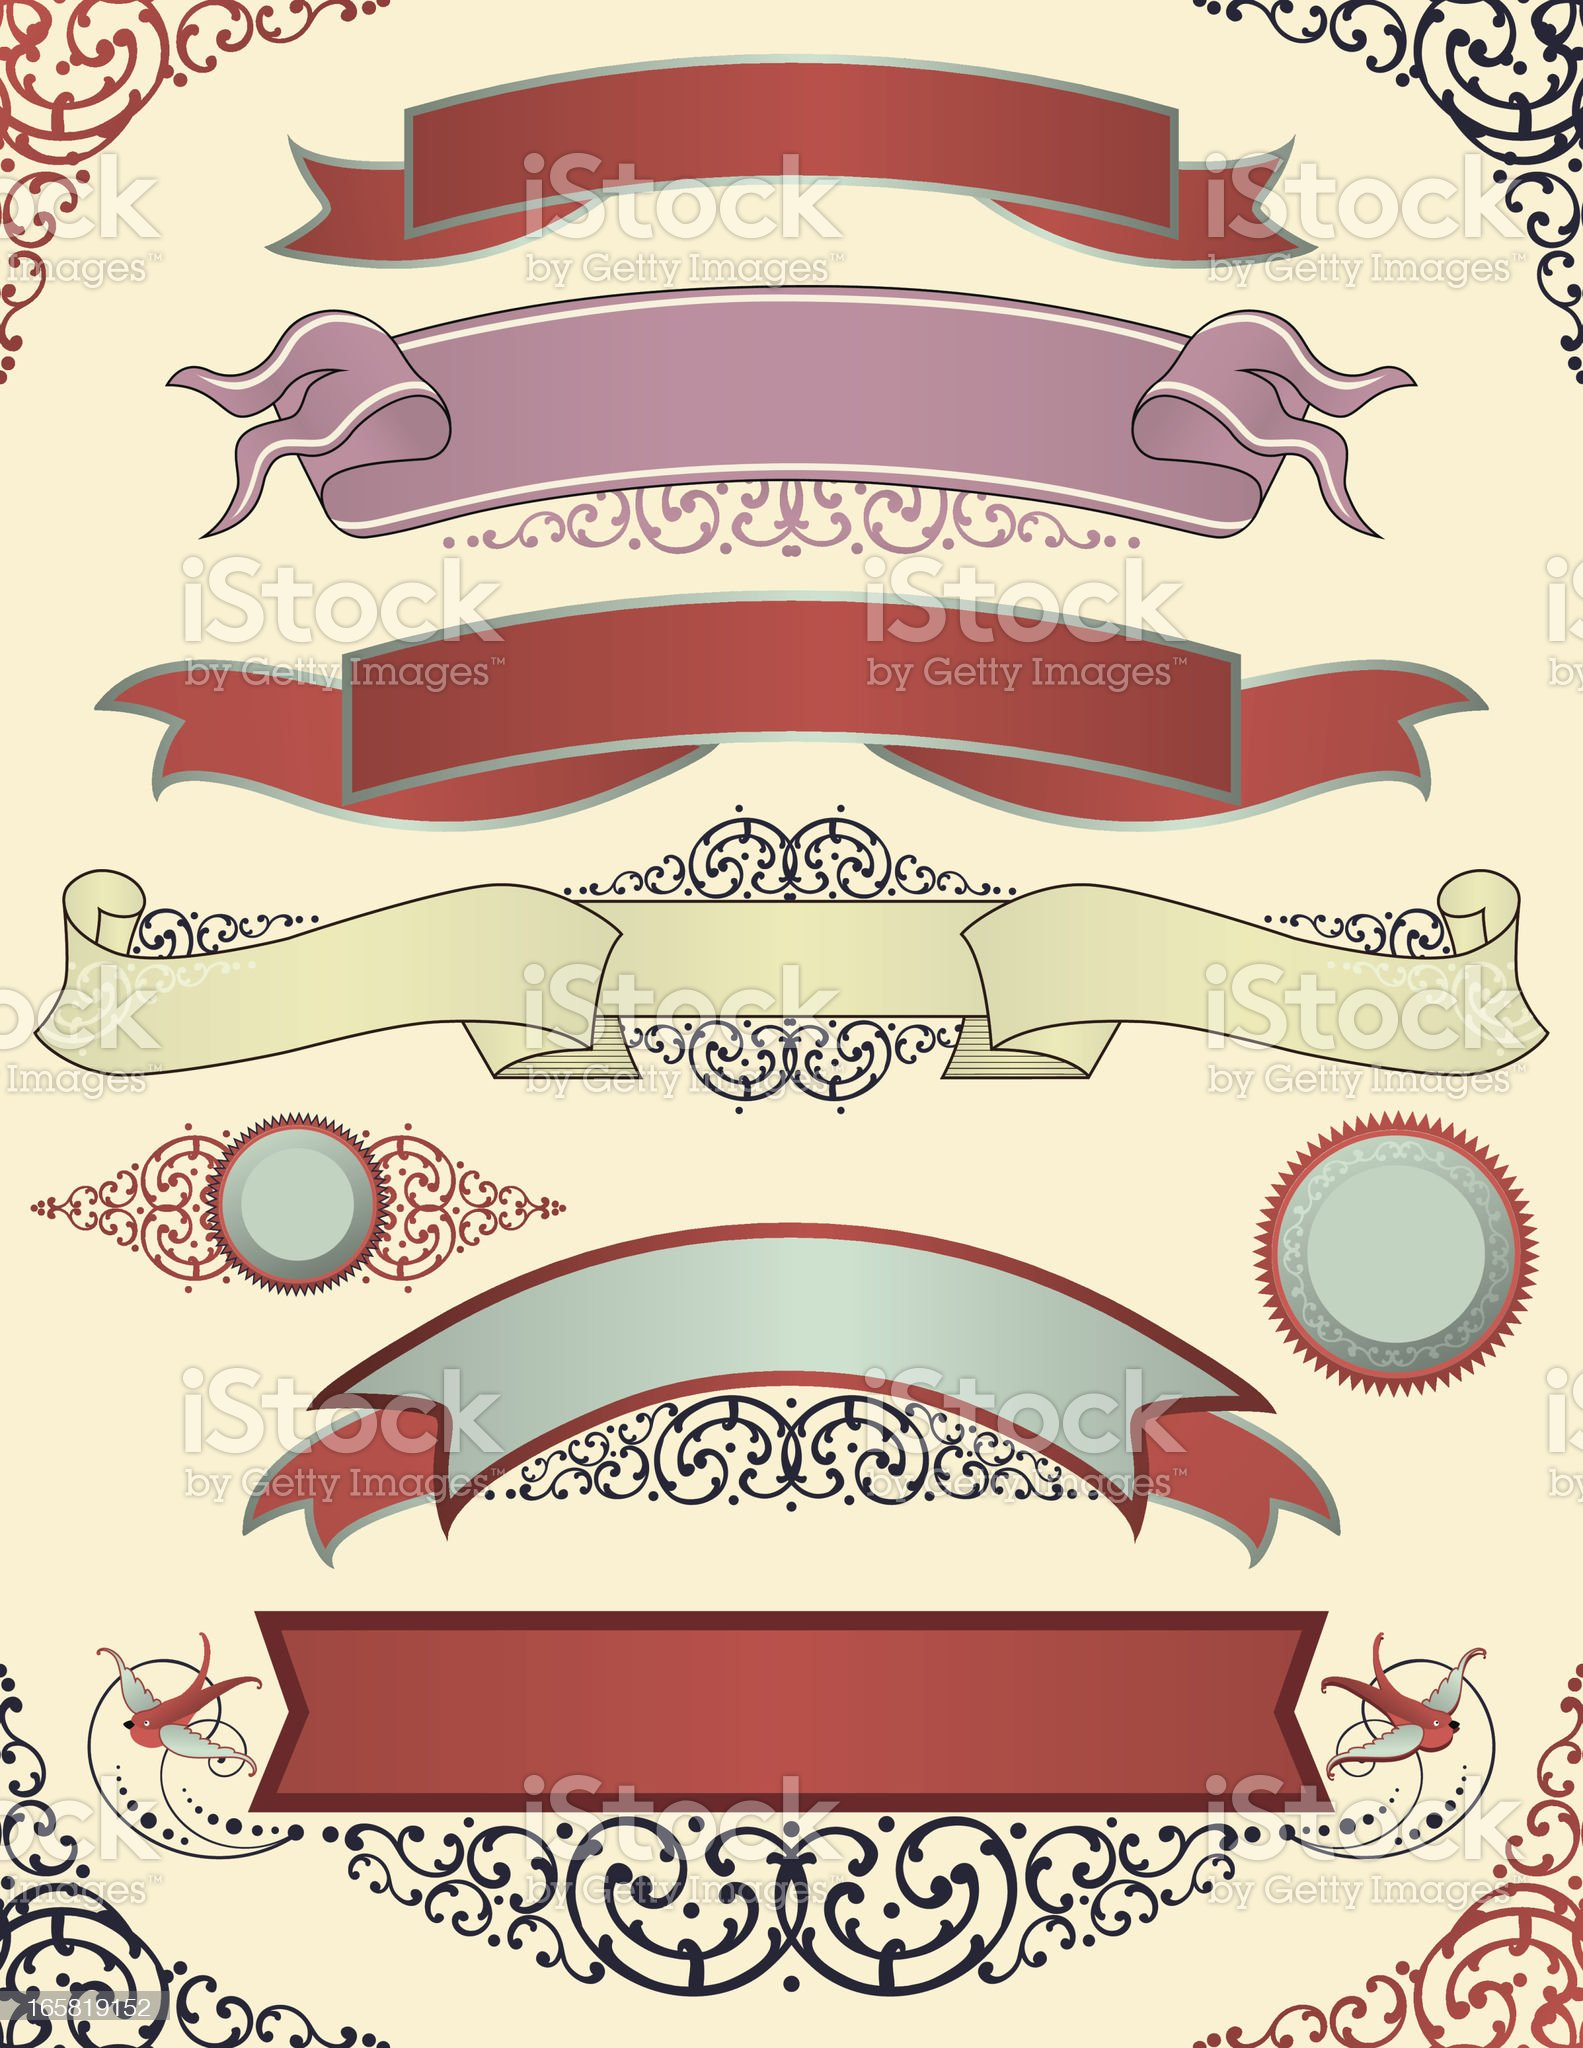 Vintage Ribbons and Banners royalty-free stock vector art